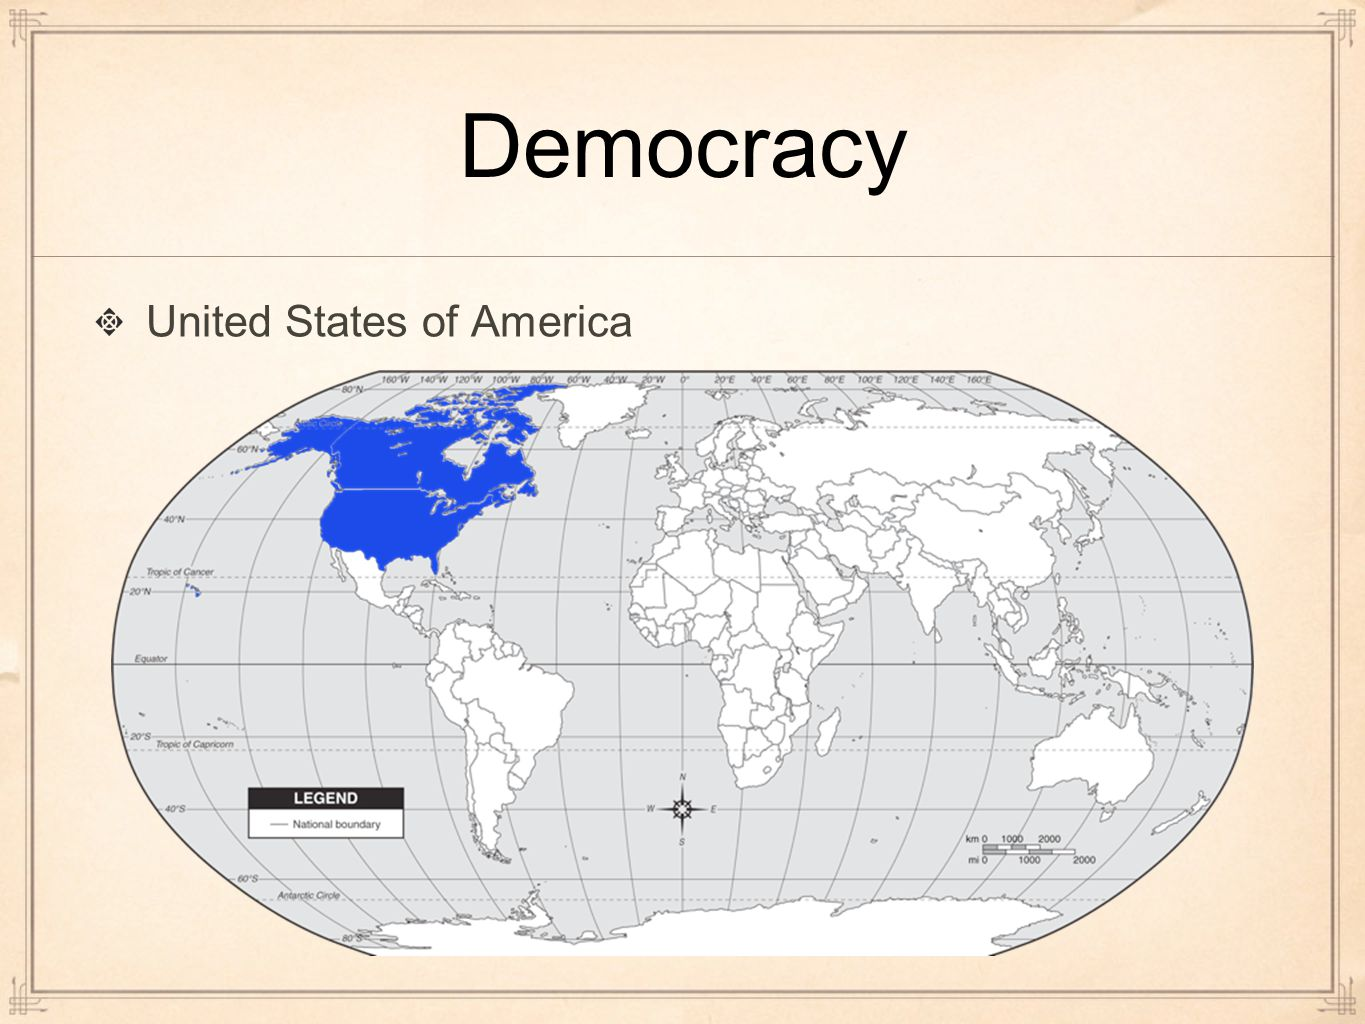 """the effects of democracies on the united states of america Americans """"live shorter and sicker lives compared to those living in all other rich democracies  states, with government  say those effects are ."""